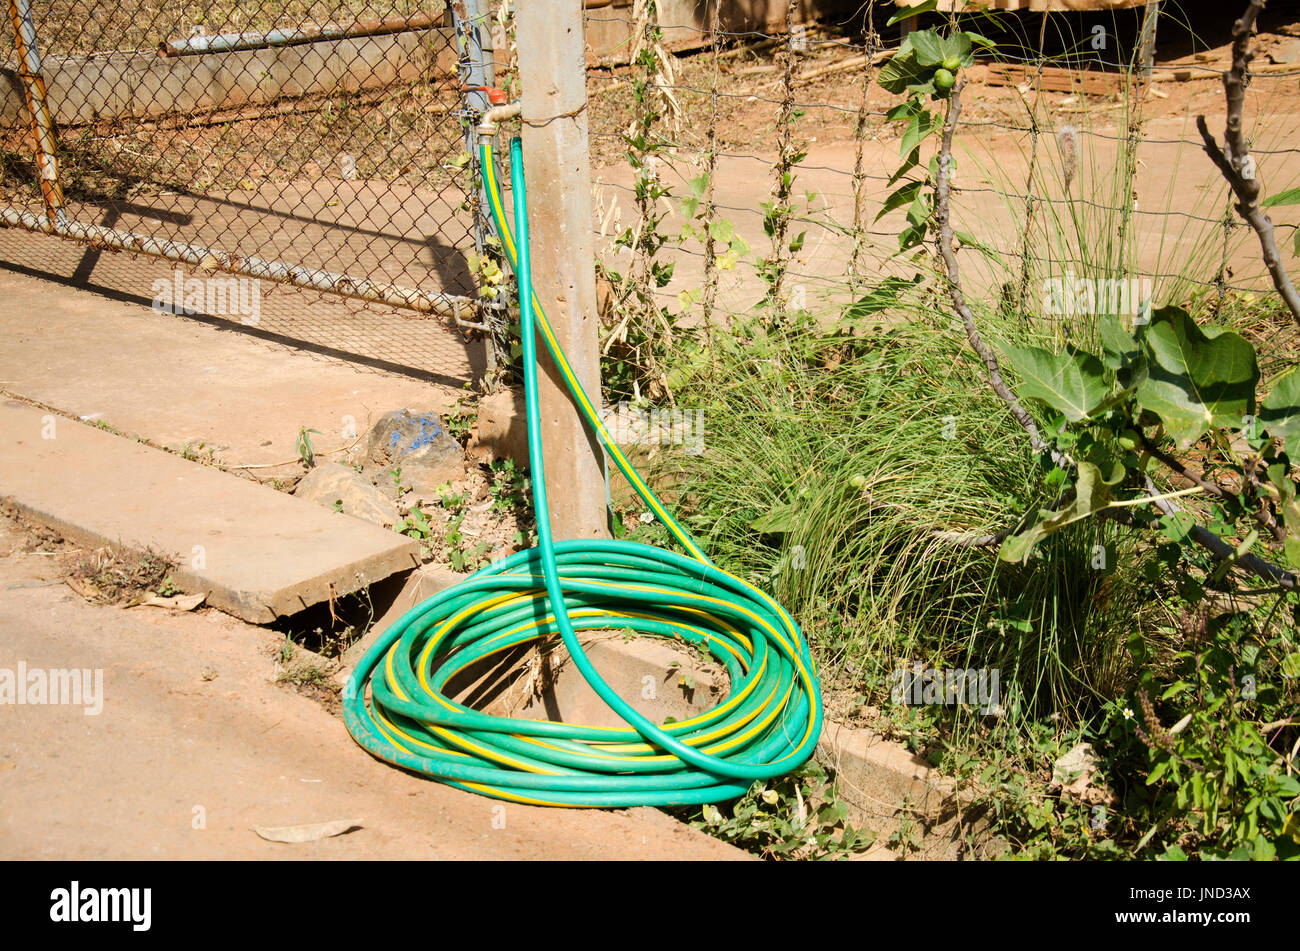 Faucet water tap connect with rubber hose or hosepipe at outdoor in garden - Stock Image